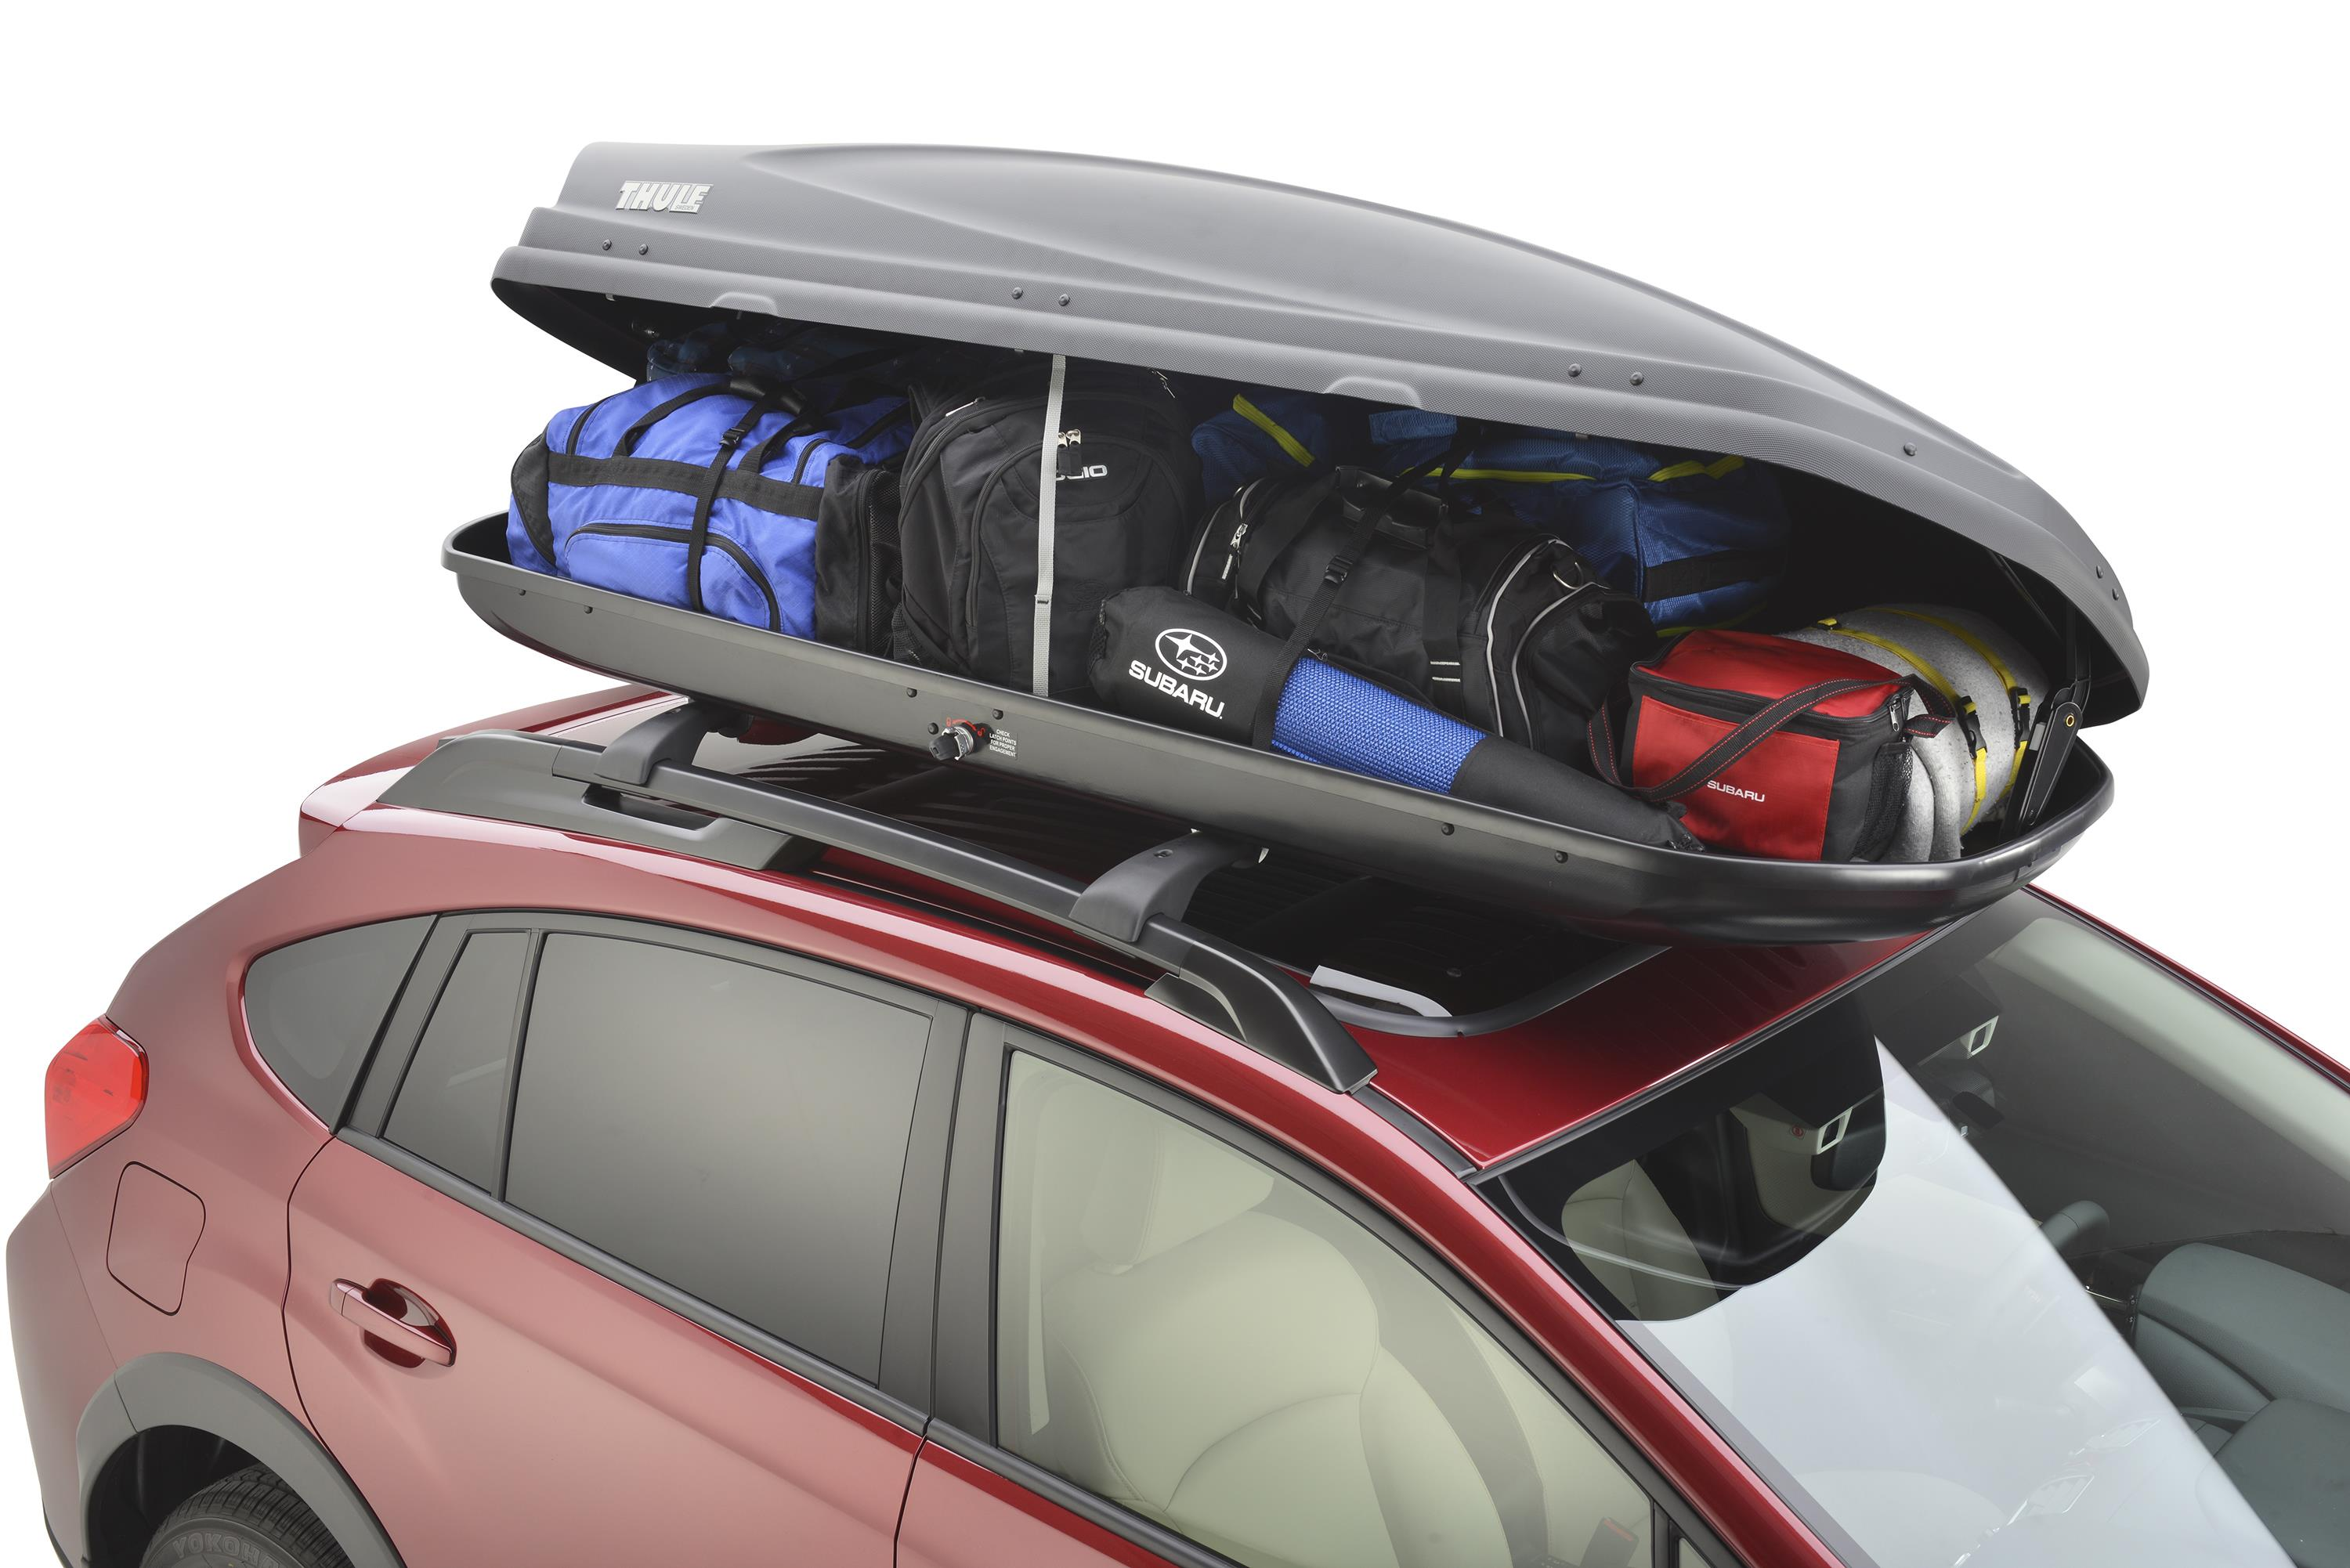 2017 subaru forester roof cargo carrier extended provides side soa567c030 kirby subaru. Black Bedroom Furniture Sets. Home Design Ideas